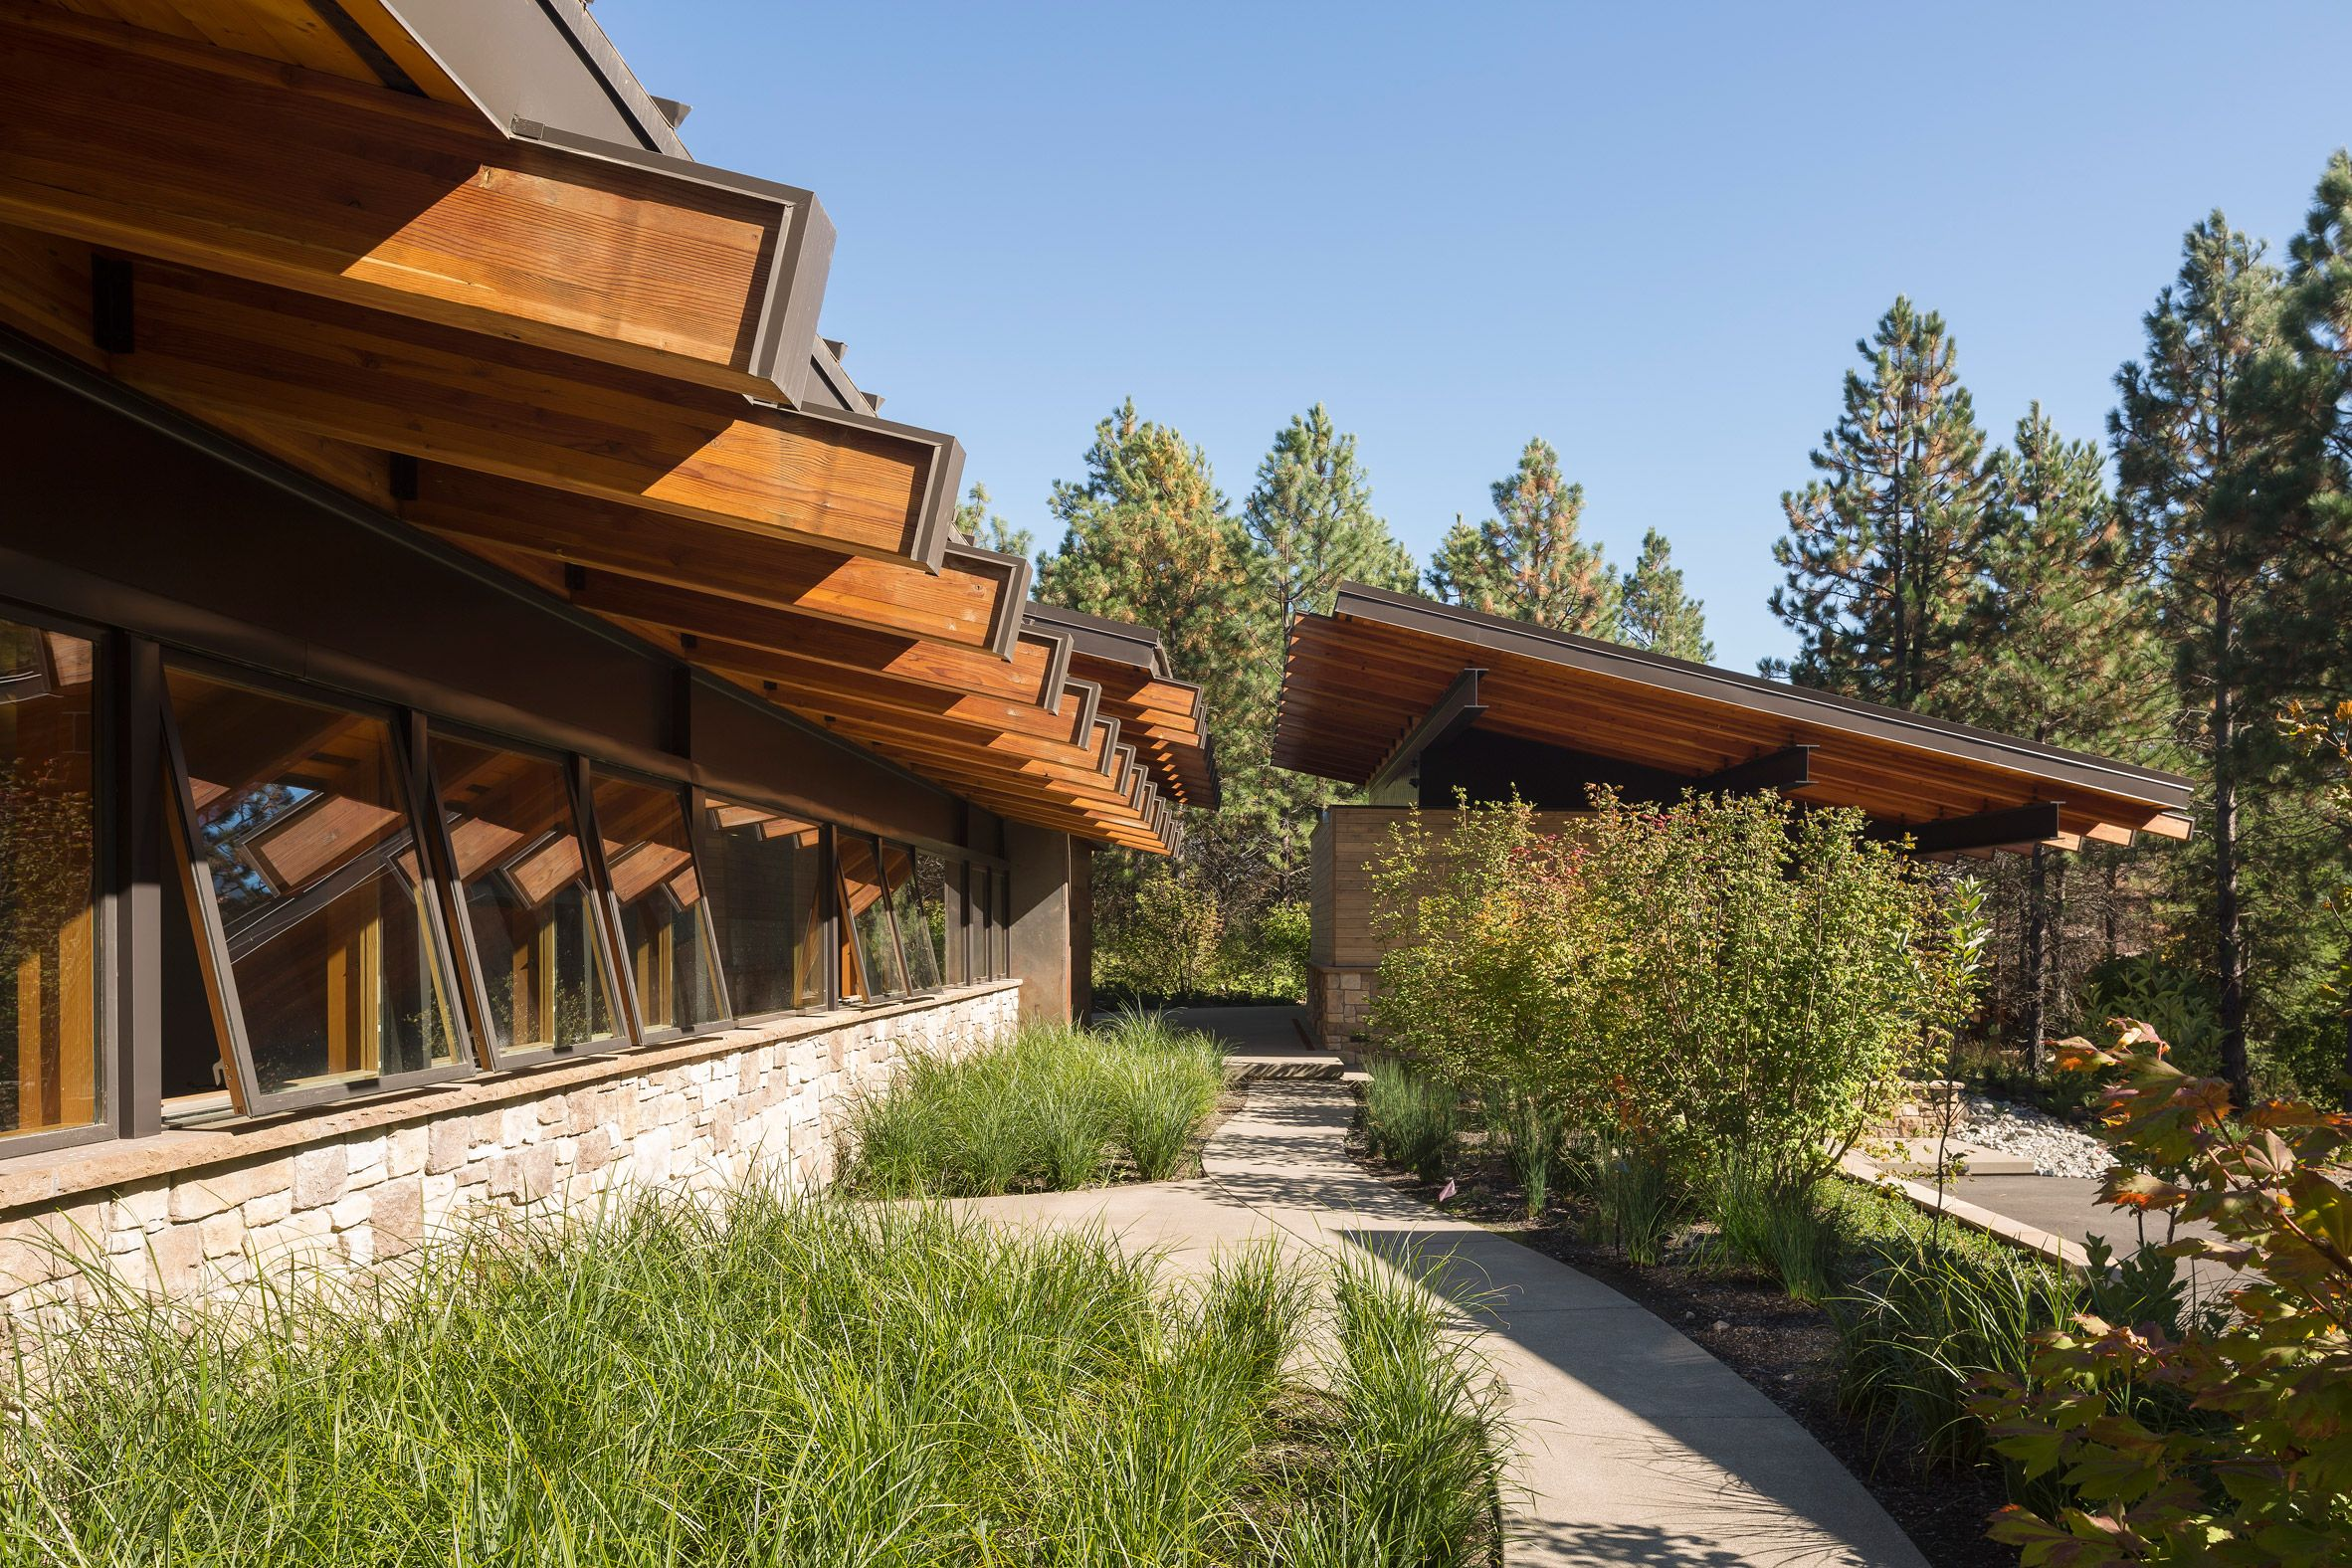 Steel Beams Support Dramatic Roof Overhangs At Washington State Retreat By Coates Design Architecture Roof Architecture Architect Design